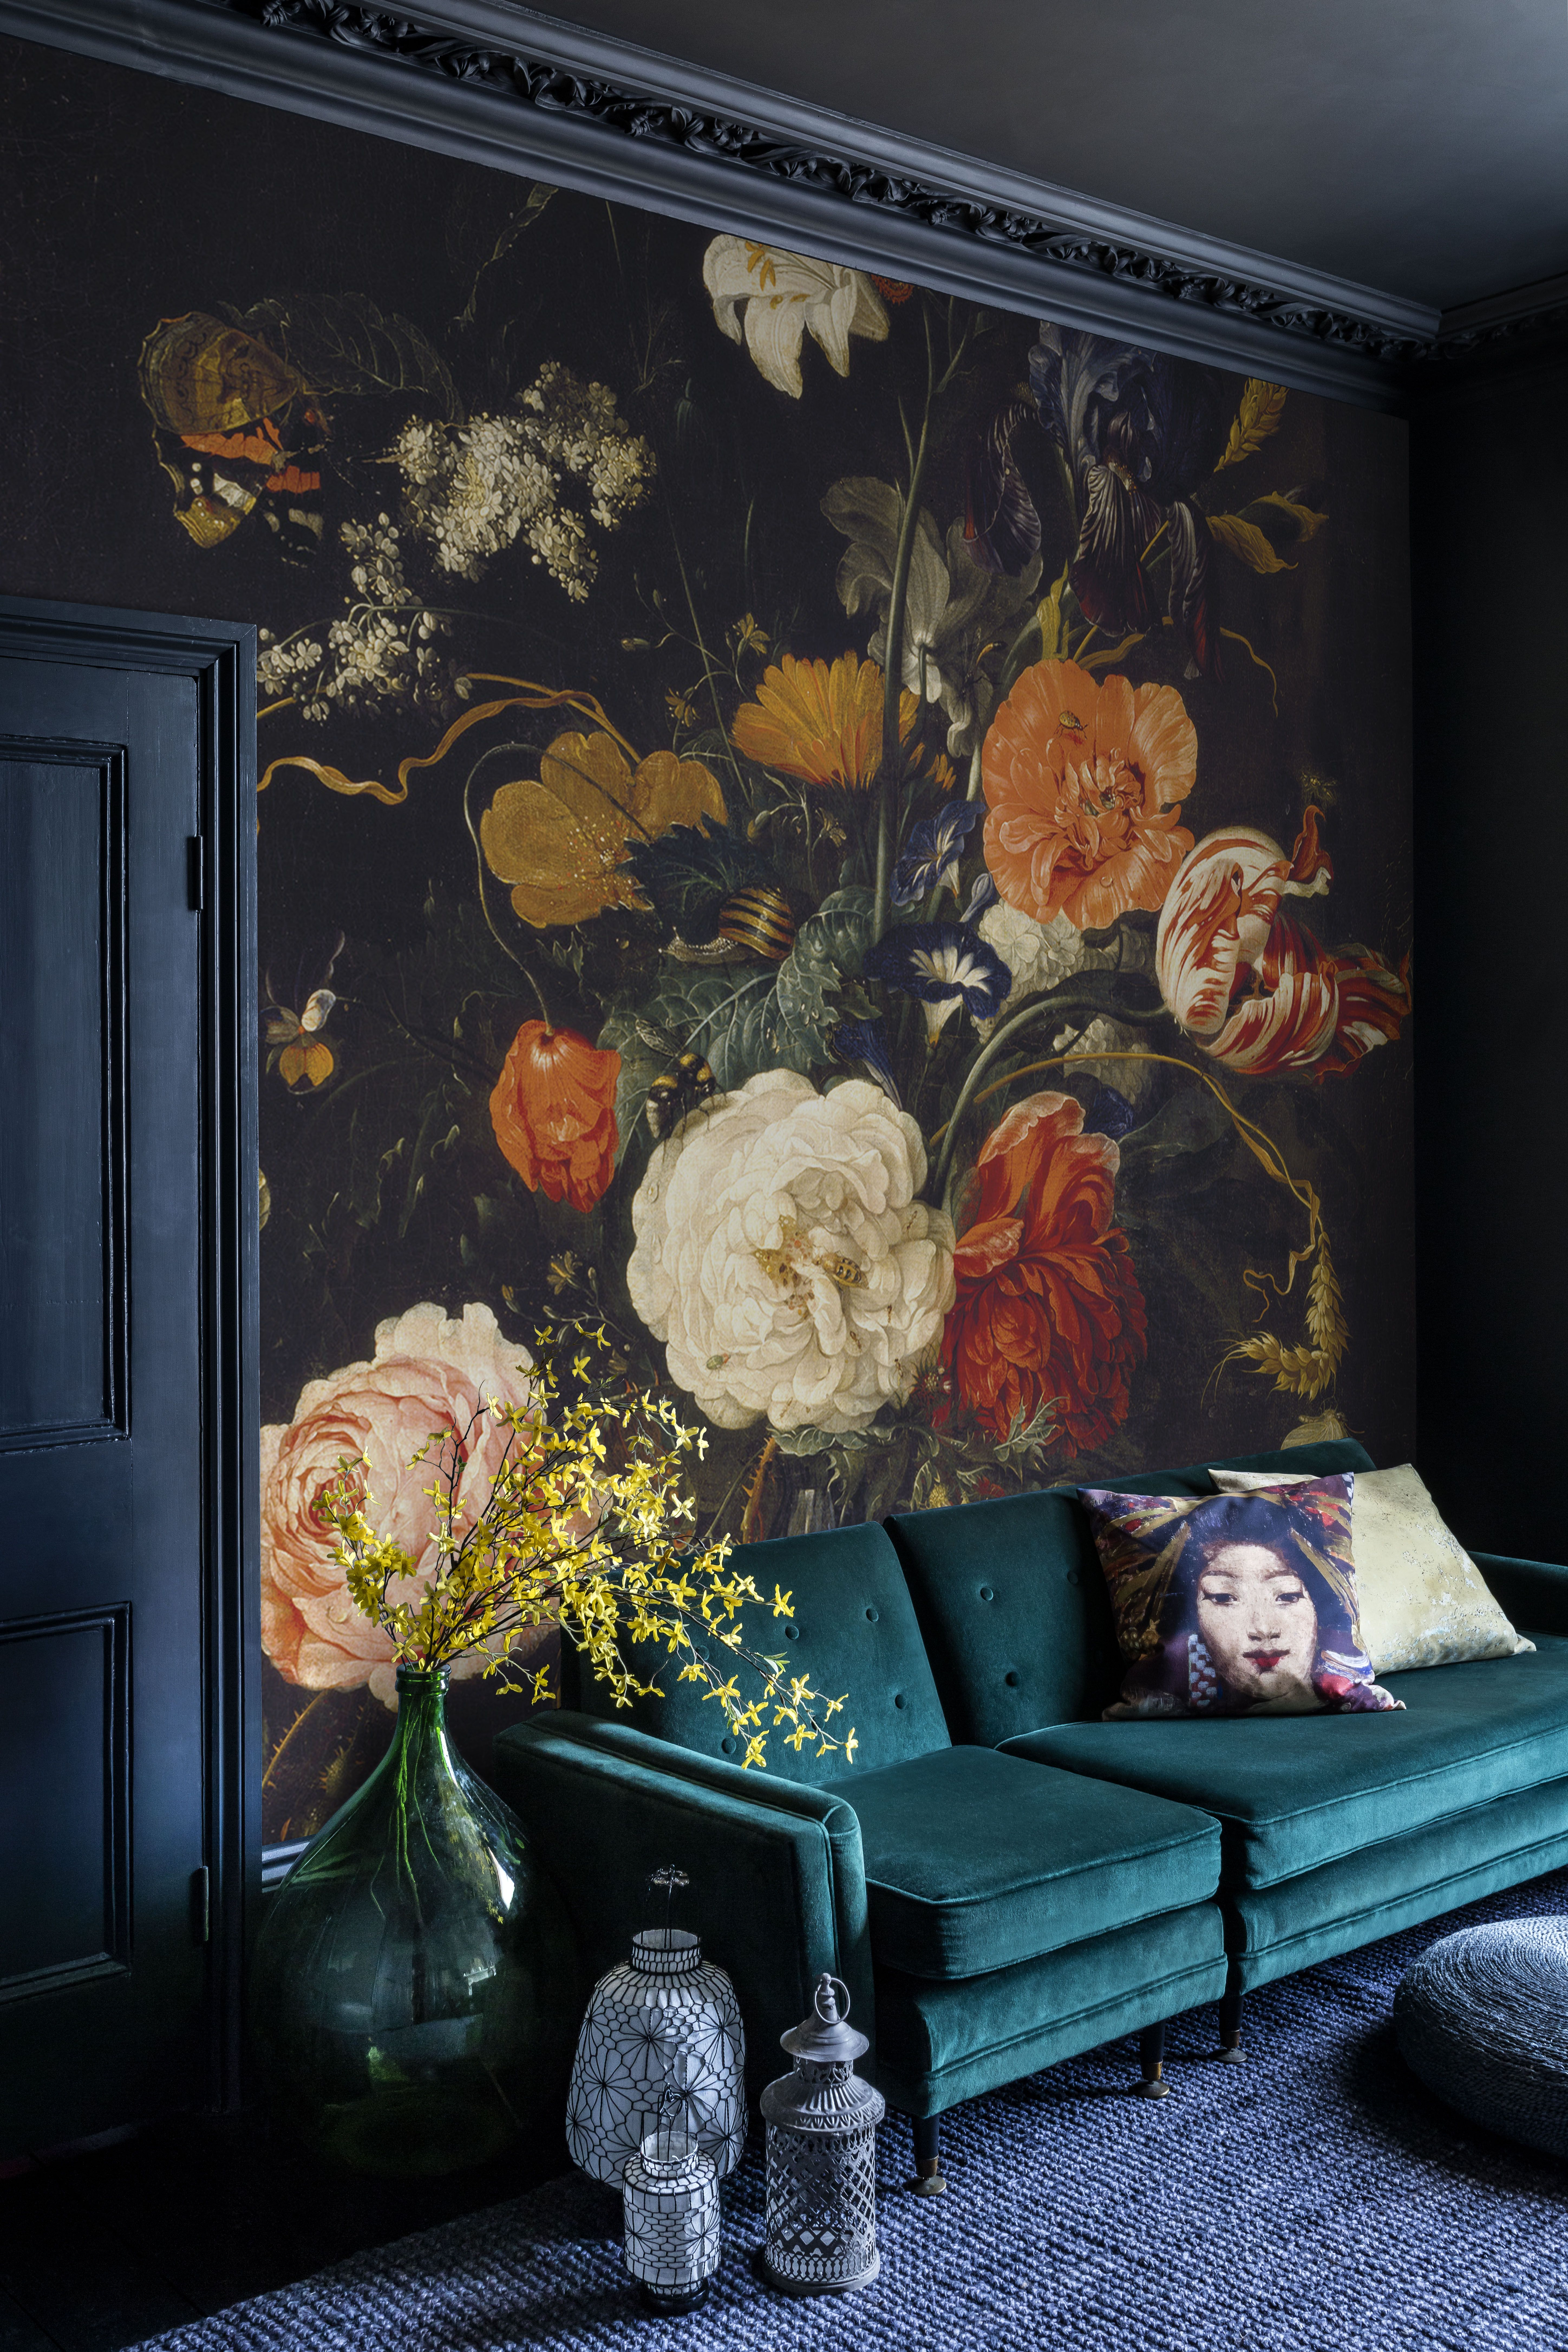 A Vase of Flowers with Berries and Insects Mural by Jan Davidsz de